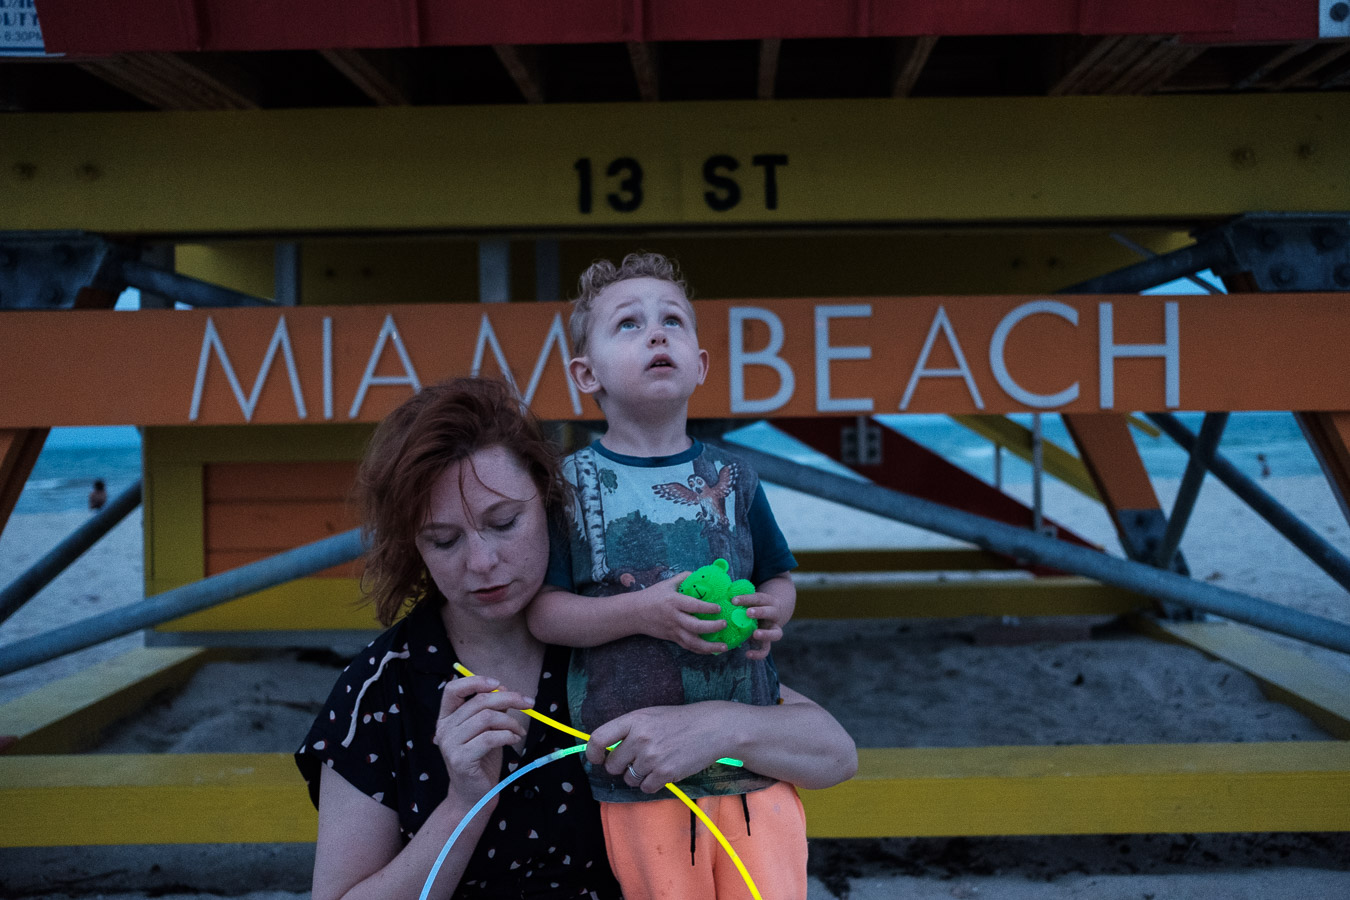 Mum and son playing with glow sticks on Miami beach